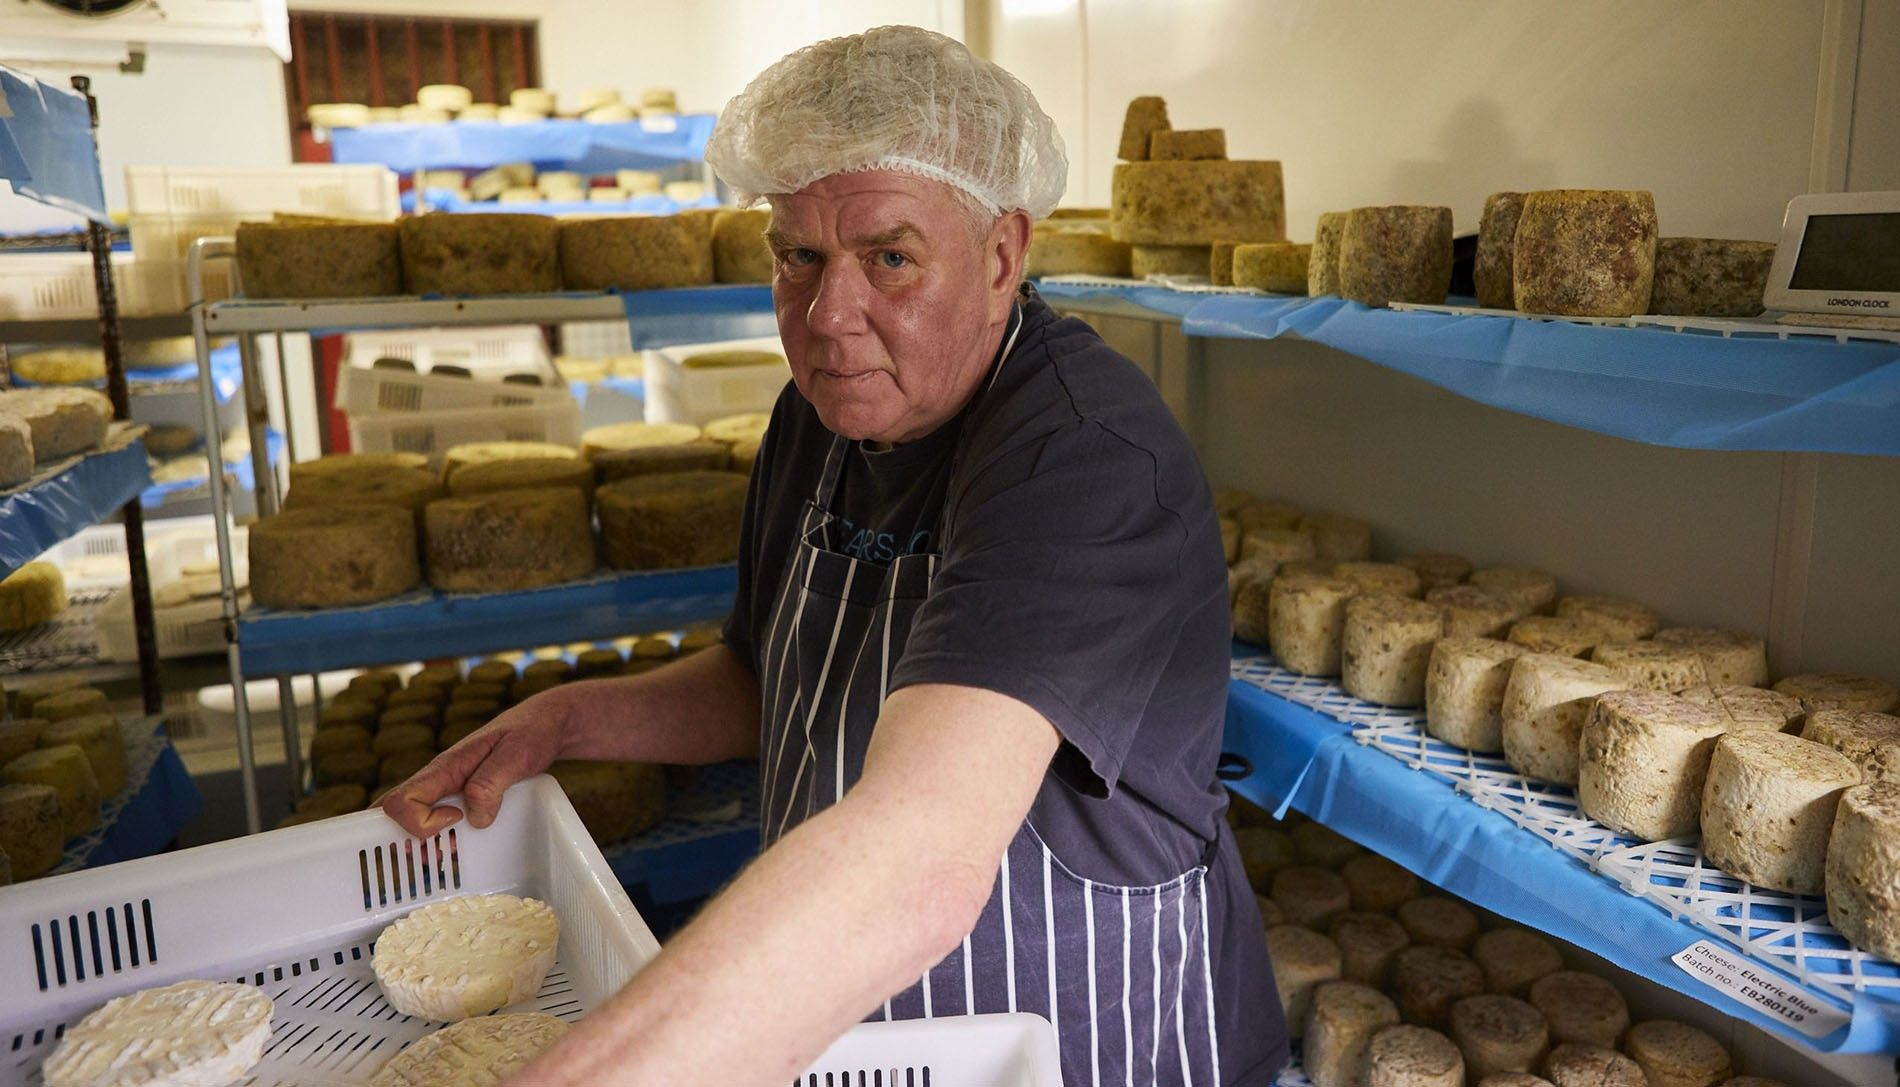 Keith of Wildes Cheese